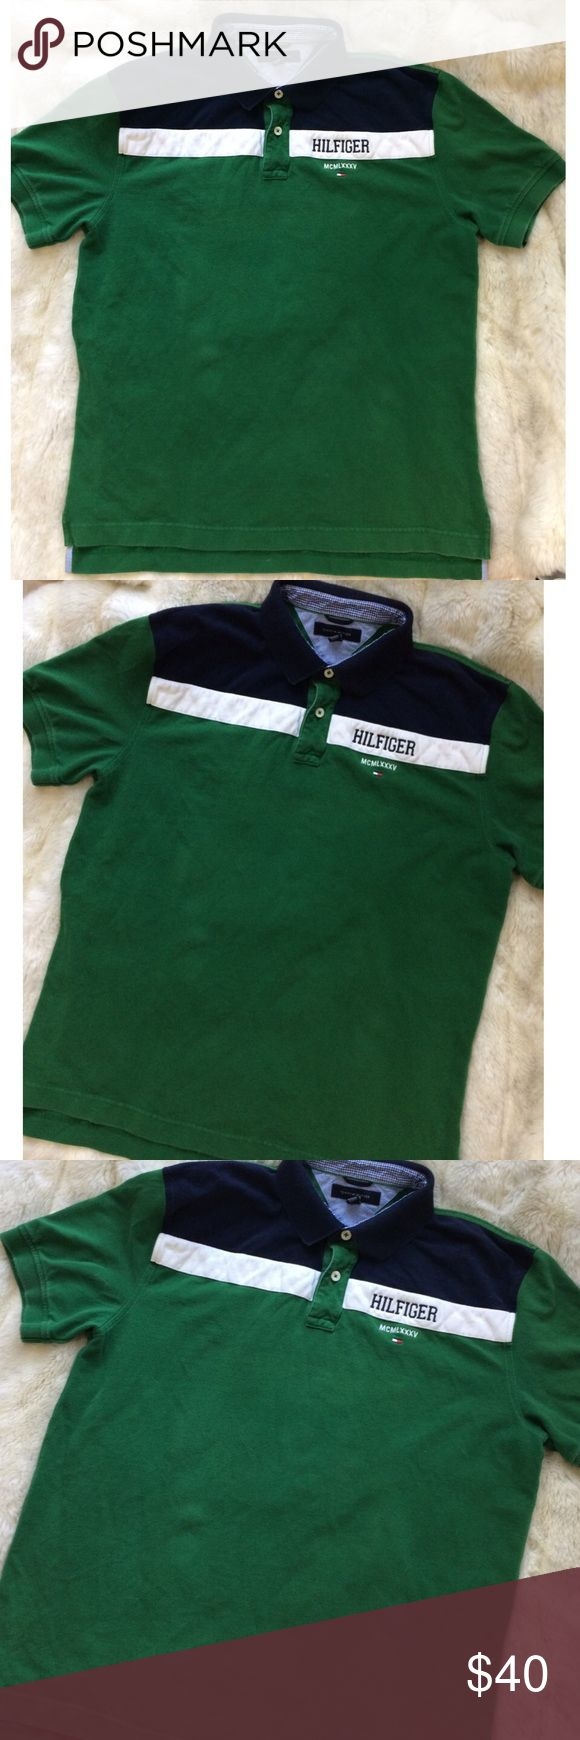 Tommy Hilfiger Green Striped Collared Polo Shirt XL men's, I wore it styled oversized with tights and sneakers. Tommy Hilfiger brand. Green color striped color block navy blue and white, classic flag patch embroidered Hilfiger on front. Classic collared polo shirt. Good condition light wear no significant flaws. FREE SURPRISE GIFT WITH EVERY ORDER! Tommy Hilfiger Shirts Polos